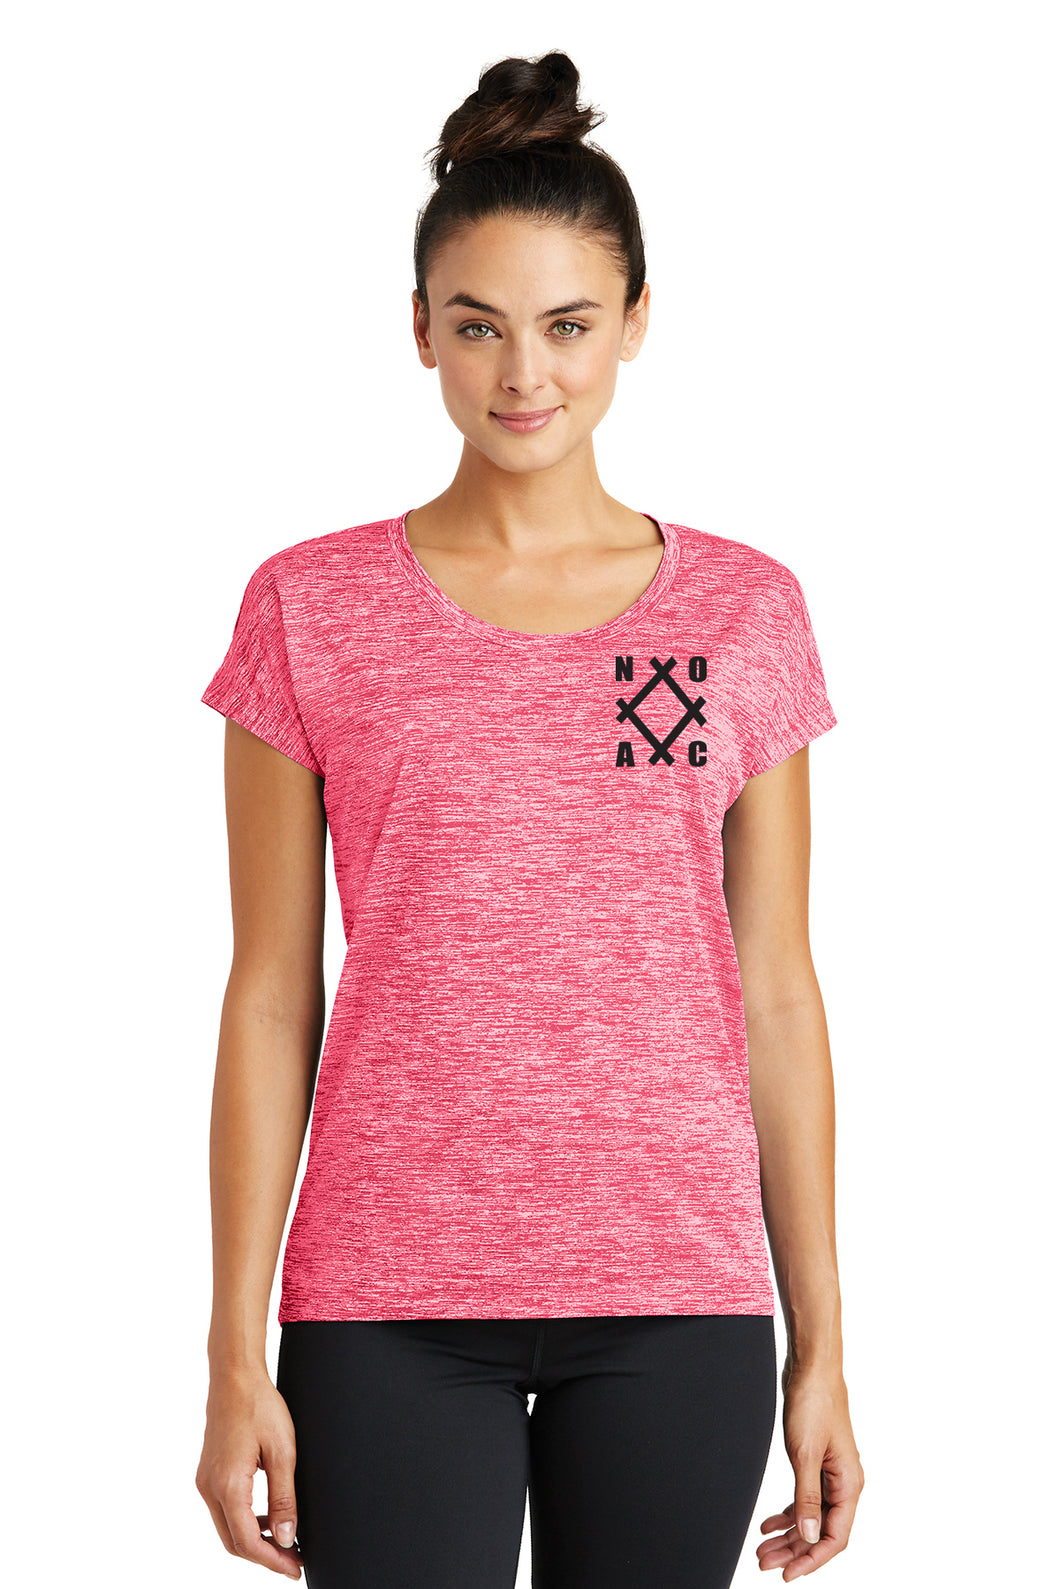 NOAC - Ladies PosiCharge® Electric Heather Sporty Tee